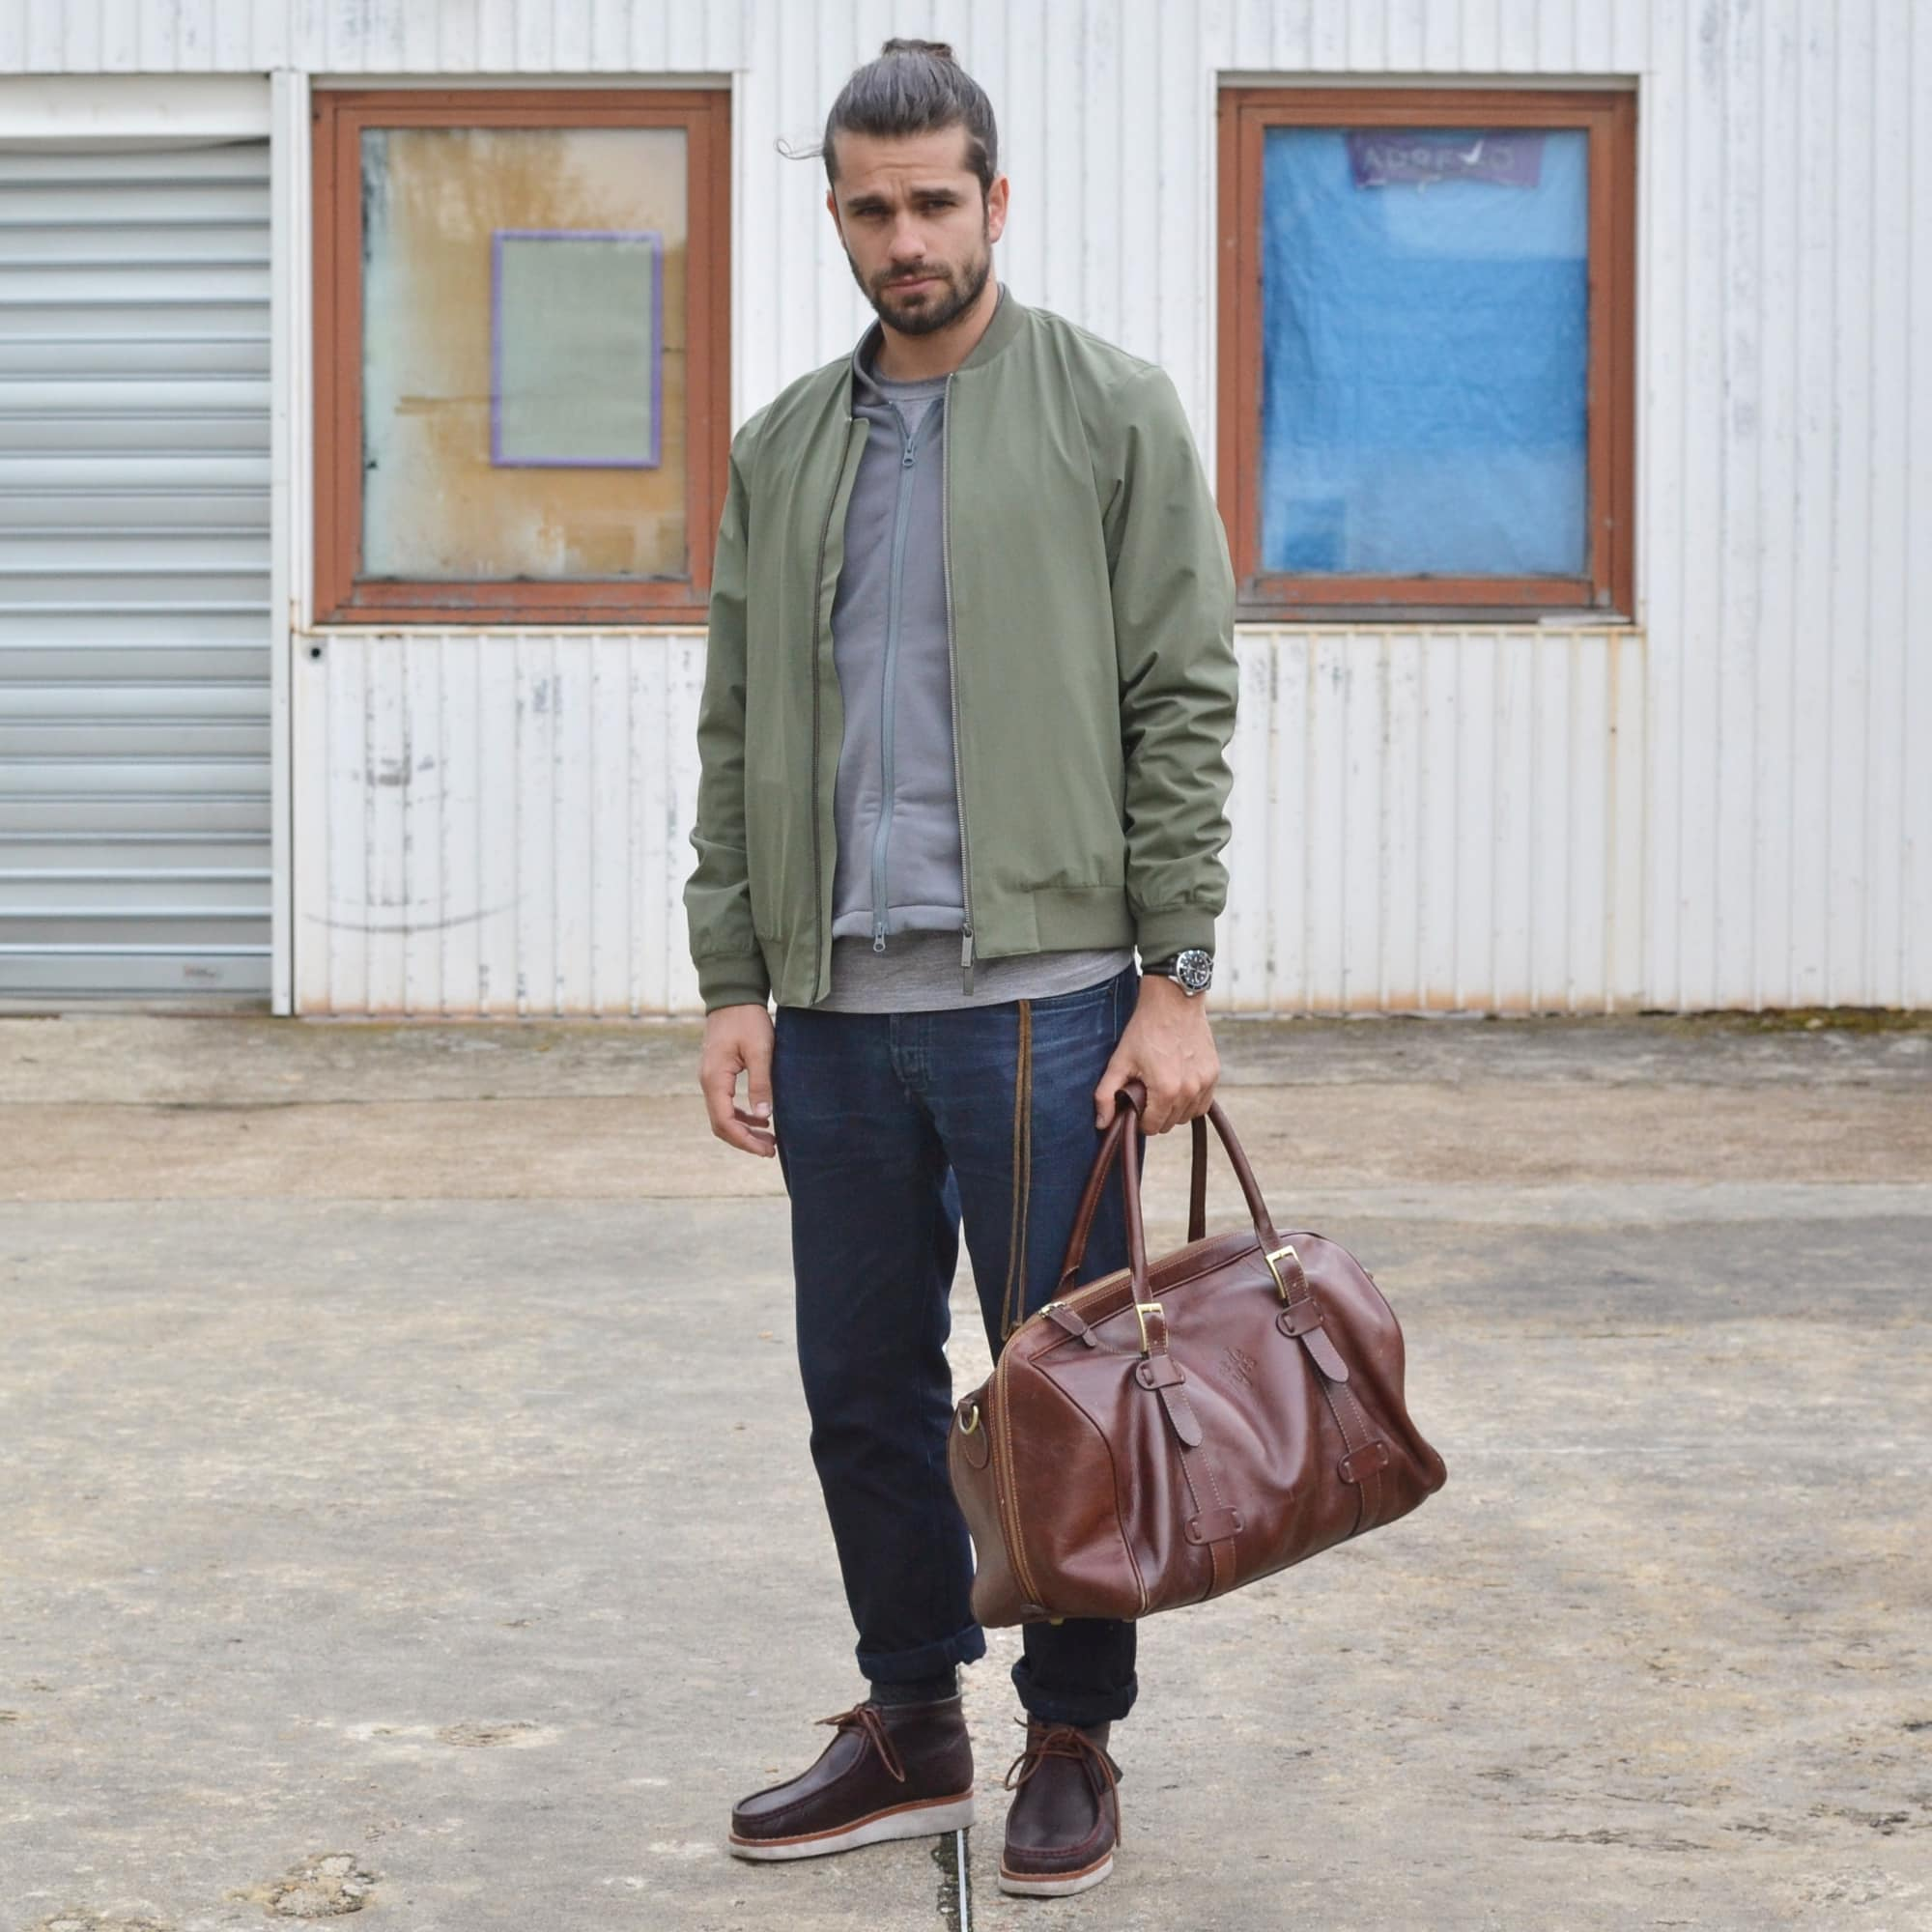 NN07 for Frenchtrotters bomber - Bonne Gueule bomber & pants - Benî tee - Clarks shoes - Frères de voyages heritage bag